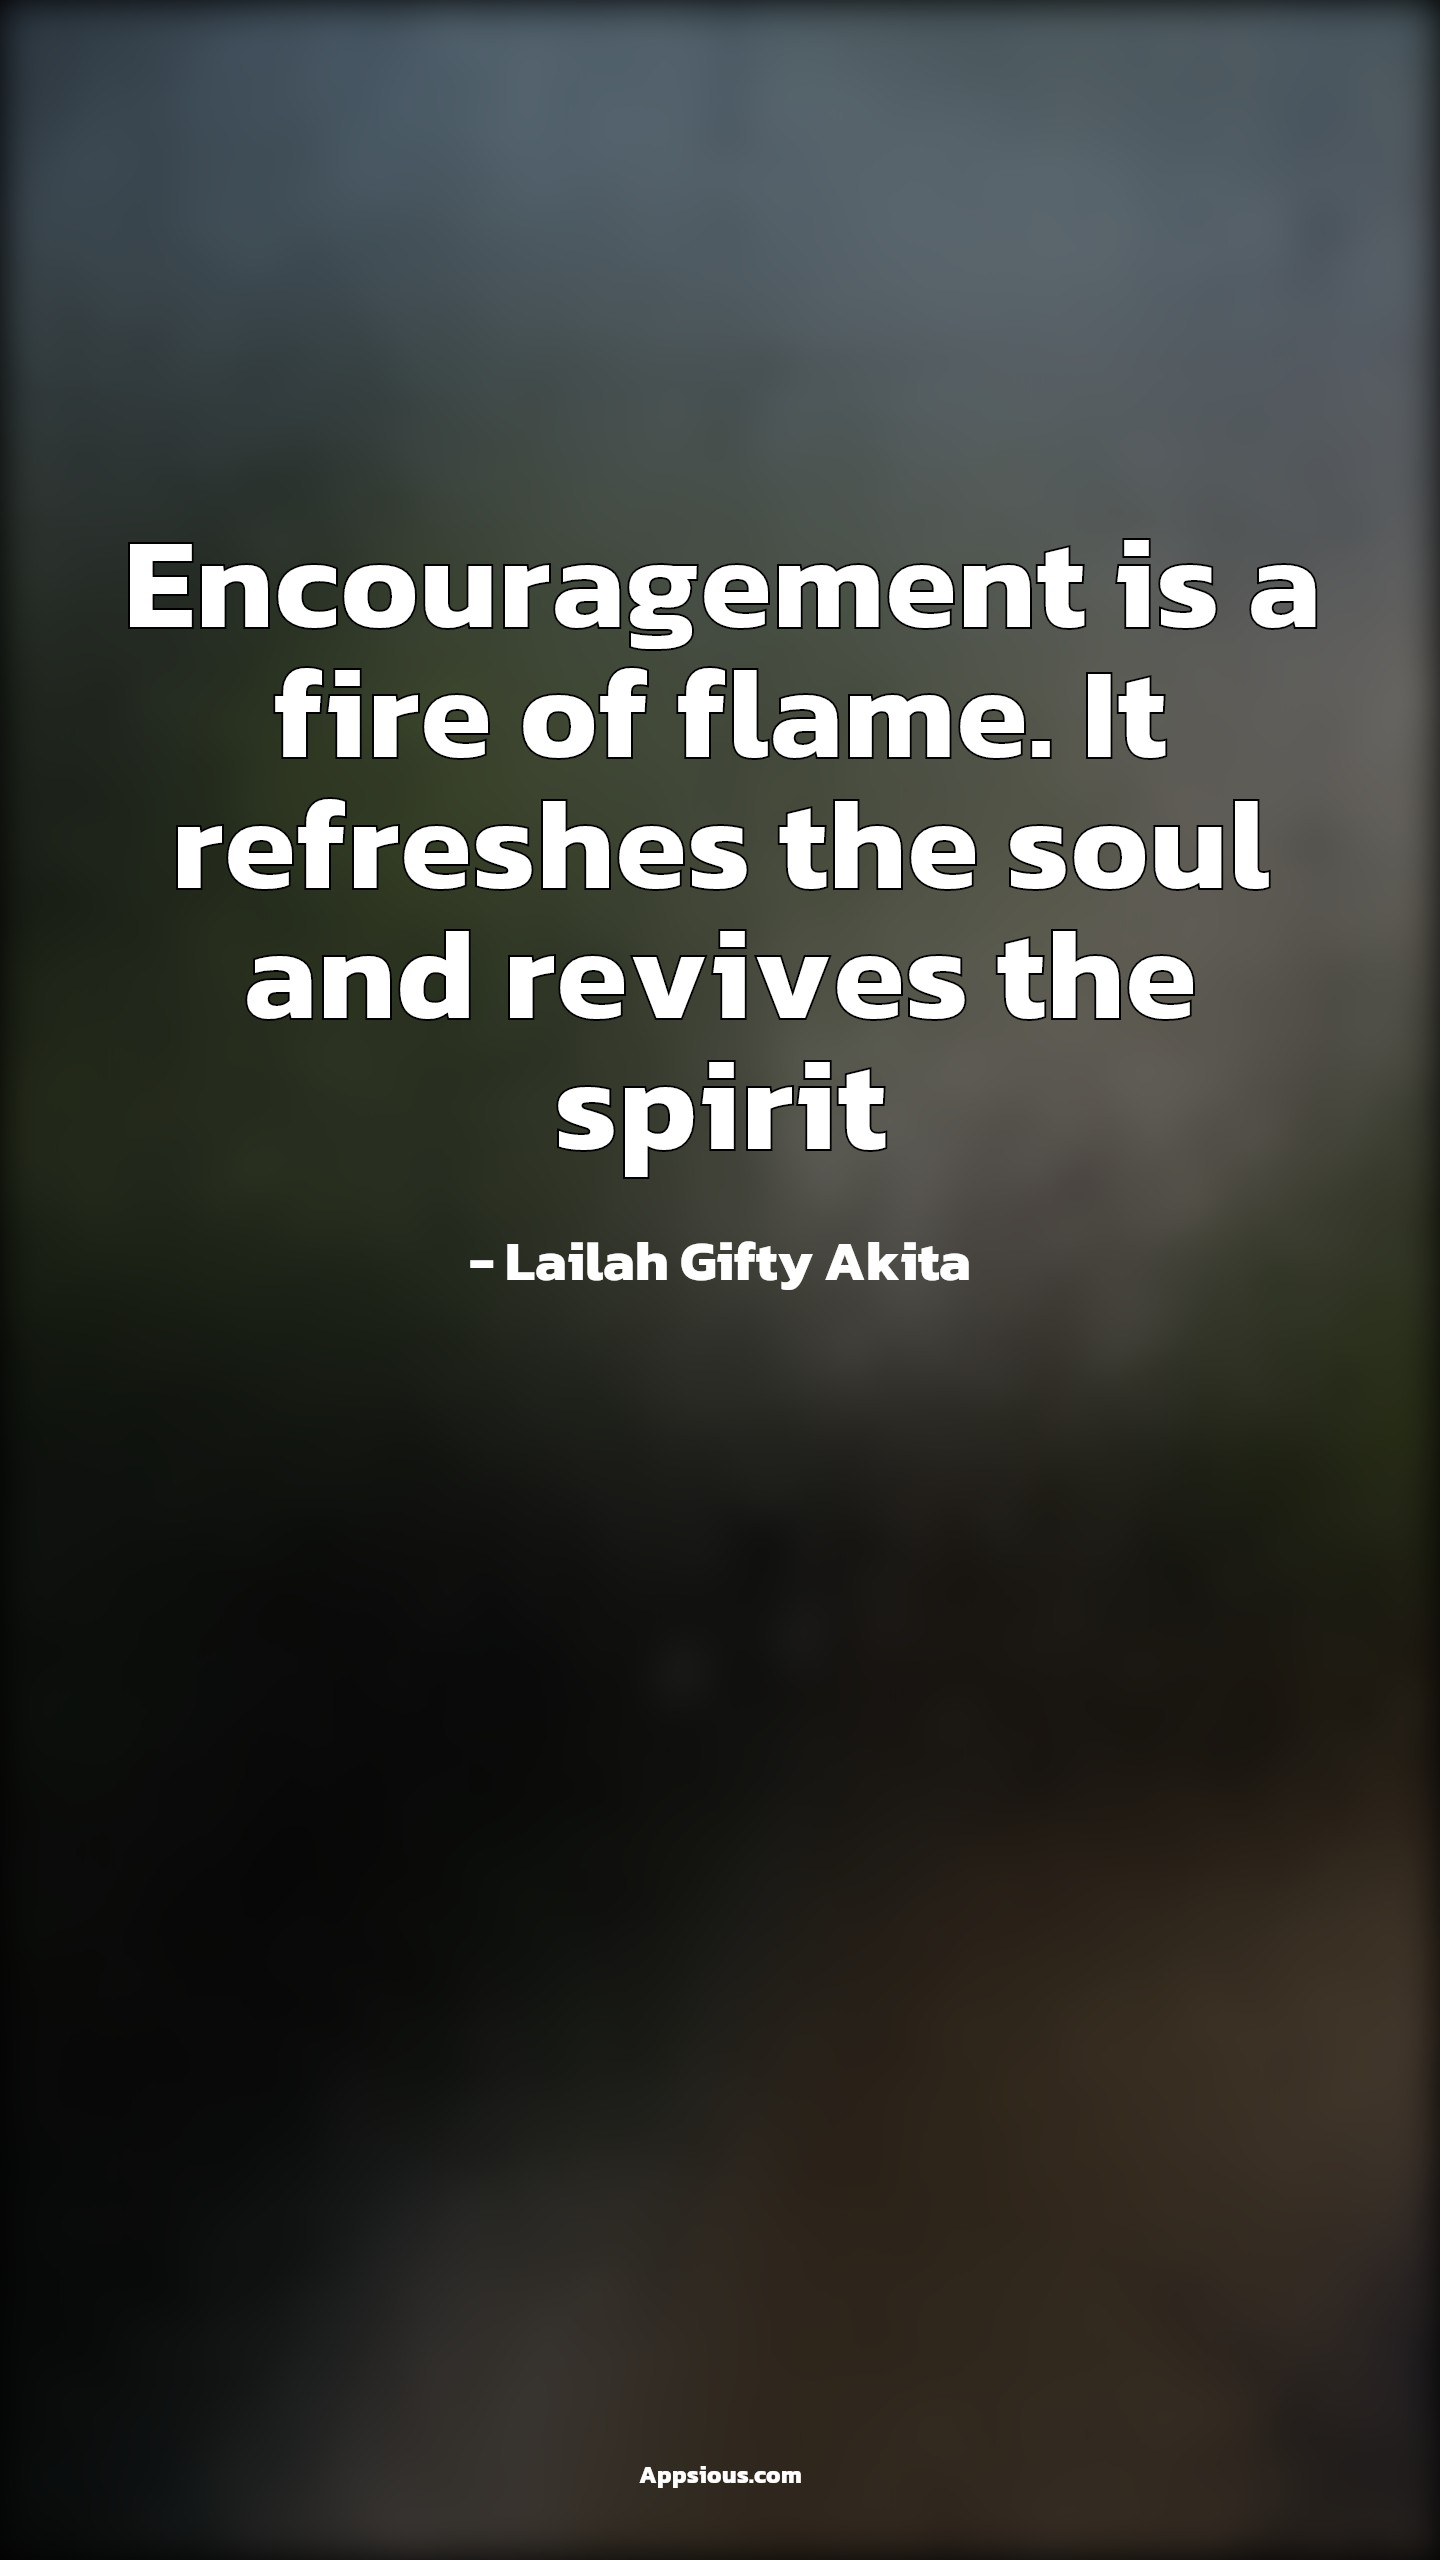 Encouragement is a fire of flame. It refreshes the soul and revives the spirit